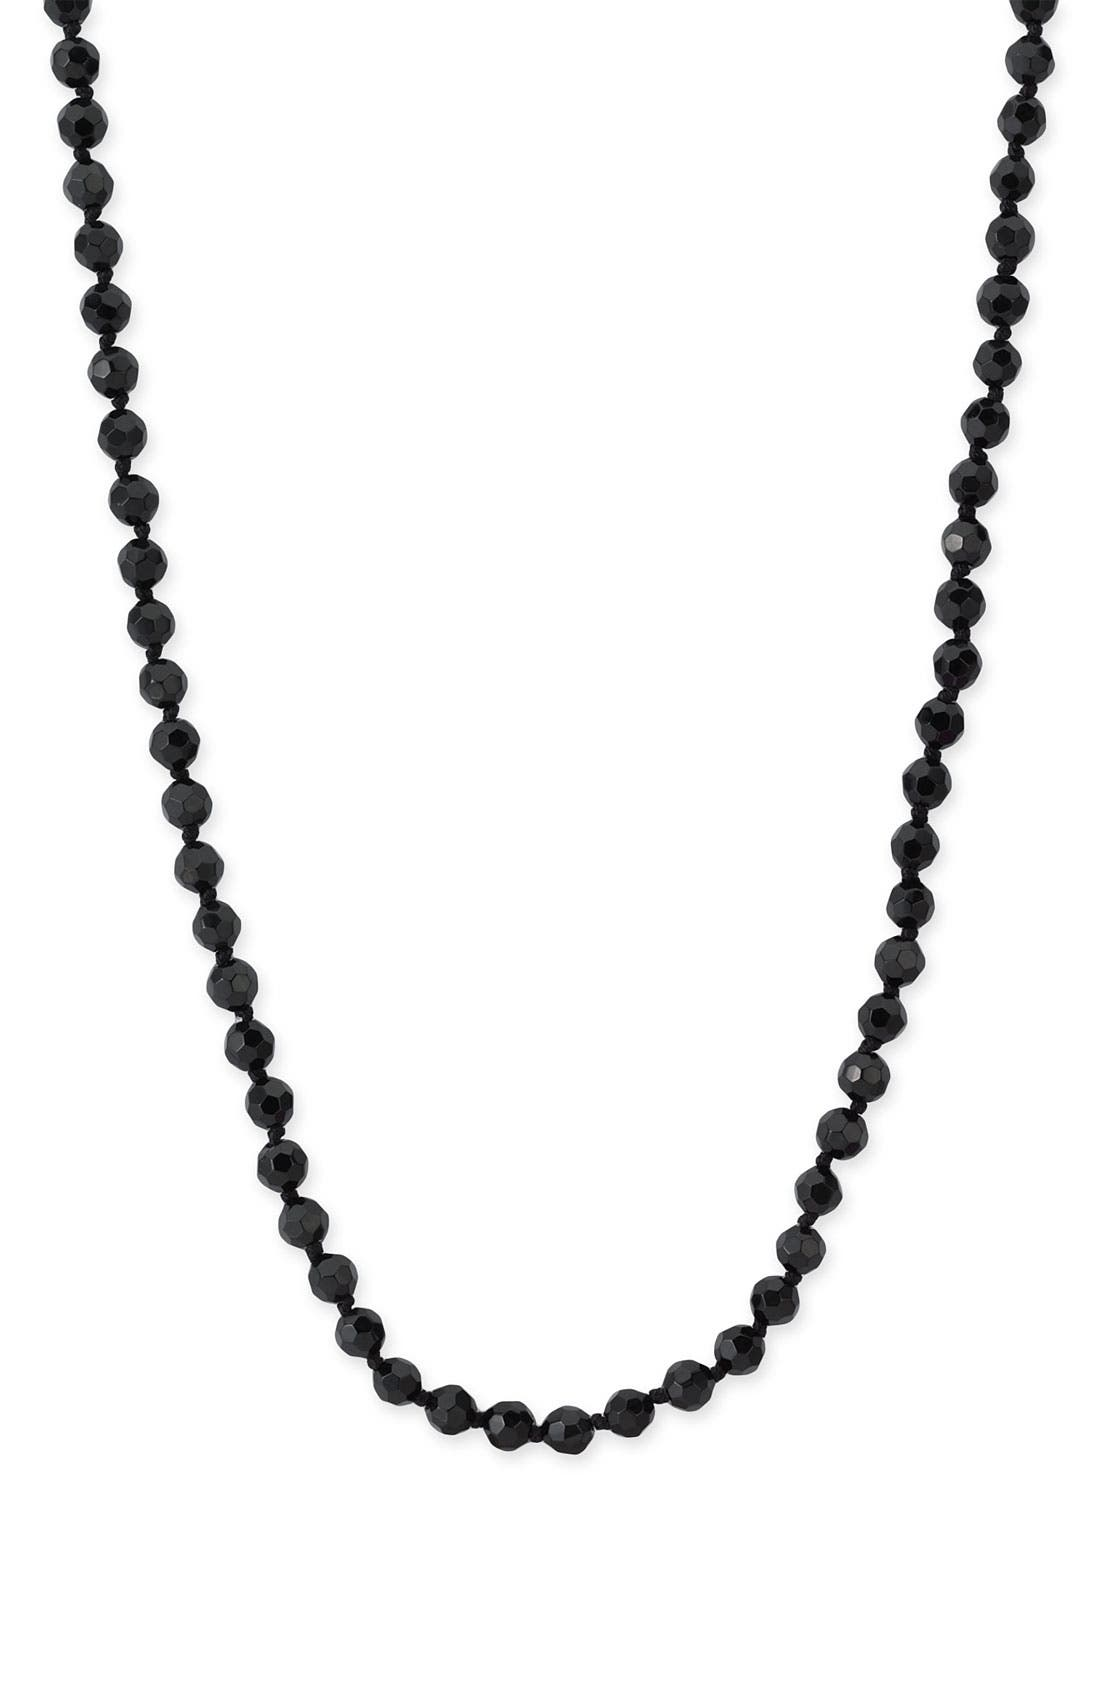 6mm Glass Pearl Extra Long Strand Necklace,                             Alternate thumbnail 2, color,                             001